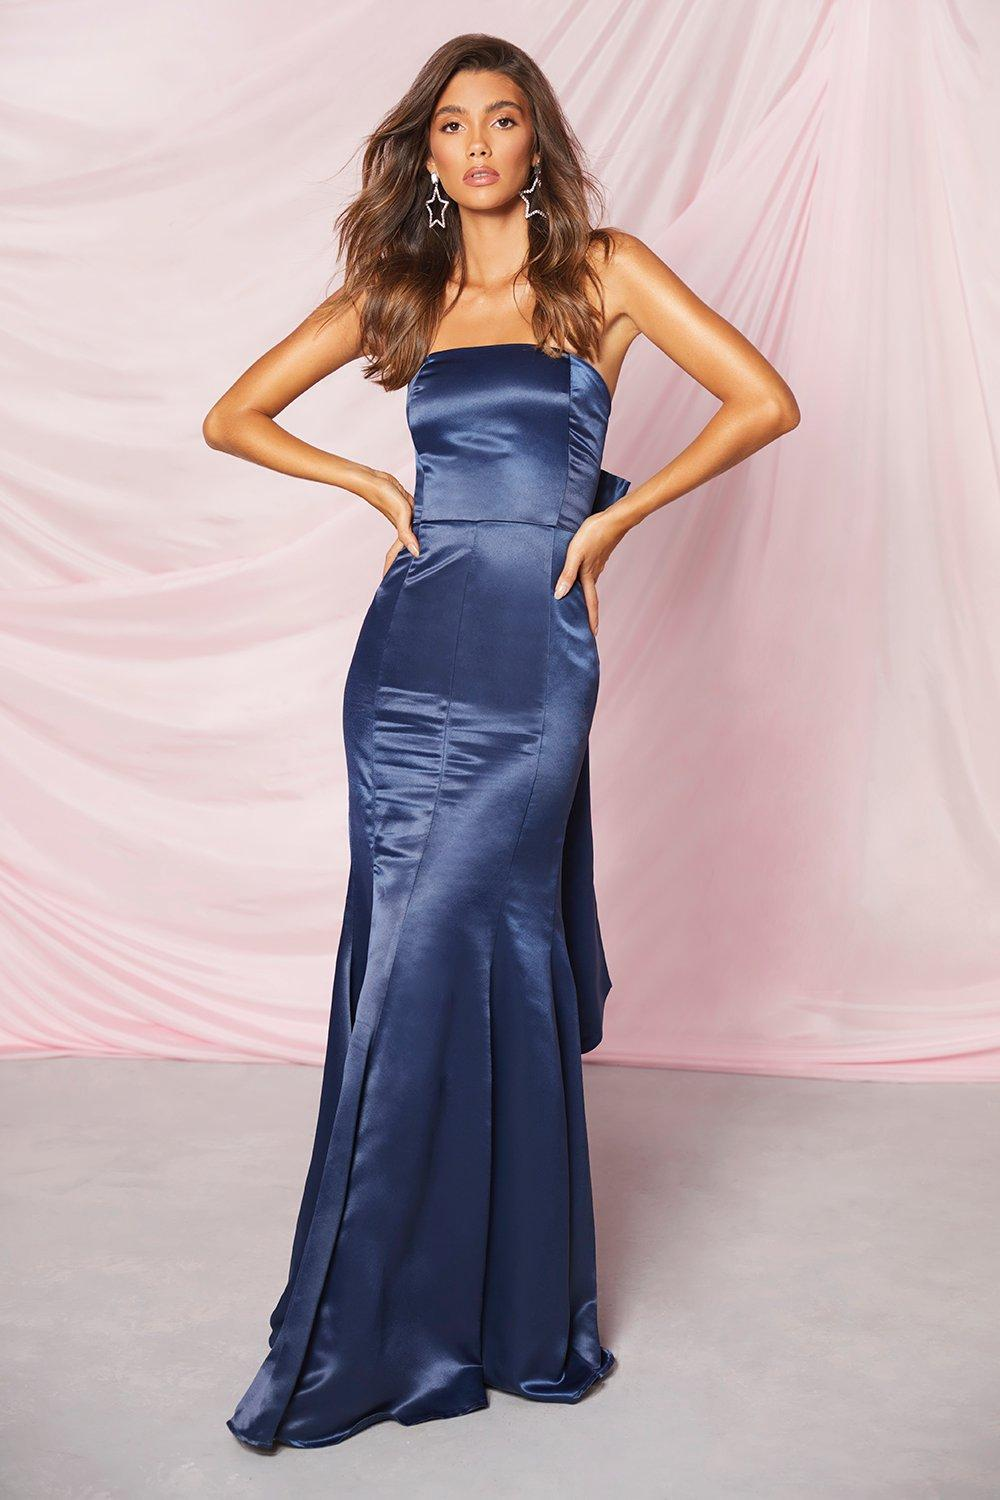 Vintage Evening Dresses and Formal Evening Gowns Womens Occasion Satin Bow Back Maxi Dress - Navy - 14 $18.00 AT vintagedancer.com